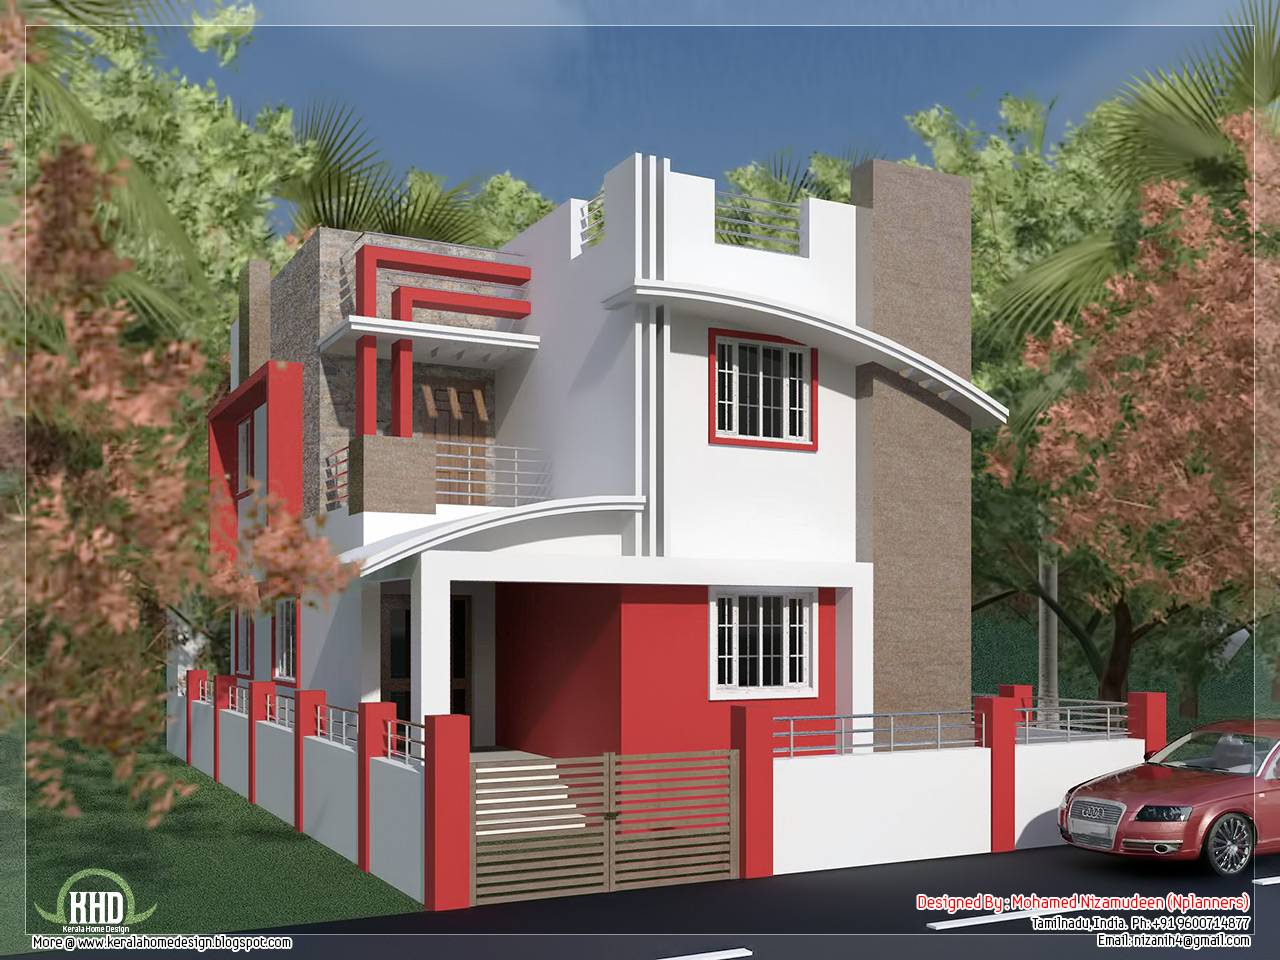 South indian villa in 1375 a taste in heaven for South indian small house designs